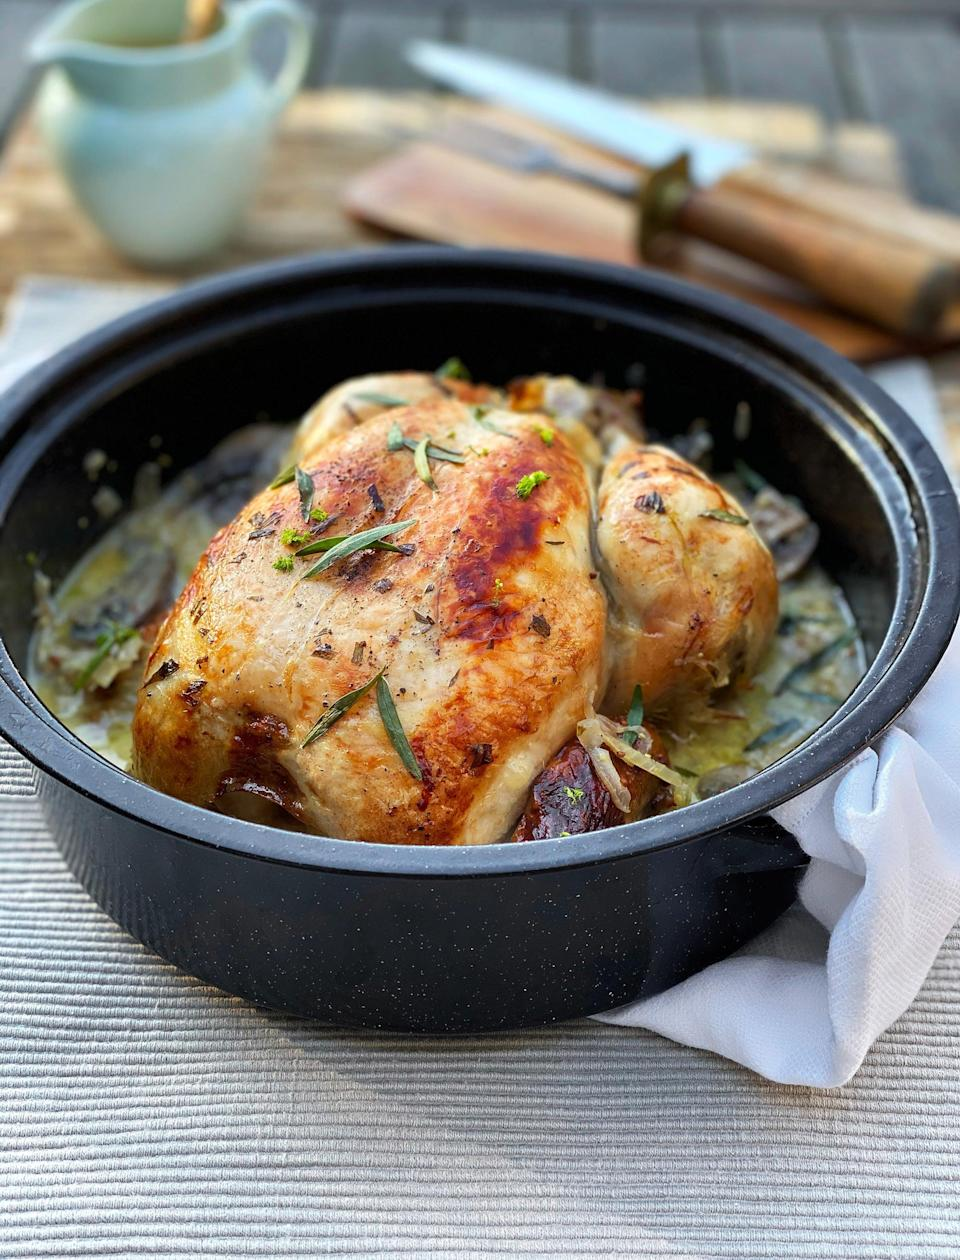 "<strong>Tarragon, Fennel And Cider One-Pot Chicken<br></strong> <br><em>Serves 4-6</em><br><br><strong>Ingredients</strong><br>knob of butter<br>1 tbsp olive oil, plus more for oiling<br>2 garlic cloves, crushed<br>1 fennel bulb, cored, halved and finely sliced, trimmings saved<br>1 Spanish onion, finely sliced<br>300g mushrooms (any type), thickly sliced<br>1 tbsp chopped tarragon leaves, plus extra to serve<br>330ml cider<br>1.6–1.8kg (large) chicken<br>2 tbsp wholegrain mustard<br>4 tbsp single cream<br>salt and black pepper to season<br><br><strong>Instructions</strong><br>1. Preheat the oven to 180°C/160°C fan/ Gas mark 4.<br>2. Heat the butter and oil together in a flameproof casserole. Add the garlic, fennel, onion, mushrooms and chopped tarragon. Cook for 10–12 minutes until the vegetables have softened. Pour in the cider and bring to the boil.<br>3. Oil the chicken and season well with salt and pepper. Place the chicken on top of the vegetables and roast, covered, for 45 minutes. Remove the lid, baste and roast uncovered for a further 25–35 minutes, basting occasionally, until the skin is crispy and the chicken is cooked through.<br>4. Remove the chicken from the casserole and keep warm.<br>5. Put the casserole on the hob and bring the liquid to the boil. Cook for 8–10 minutes until reduced by half, then turn the heat right down and add the mustard and cream and gently warm without boiling. Taste the sauce and add more seasoning if needed. Pour the sauce with all its bits into a jug, sprinkle the chicken with extra tarragon leaves and serve.<br><br><strong>Leftovers</strong><br>If any meat is left on the chicken, strip it from the bones and place in an airtight container with leftover sauce. This will keep in the fridge for 2 days. Reheat it gently until piping hot (but without boiling) and serve with couscous or rice. You can repurpose the leftover chicken carcass to make a delicious stock.<span class=""copyright"">Photo Courtesy of The Batch Cook Book.</span>"